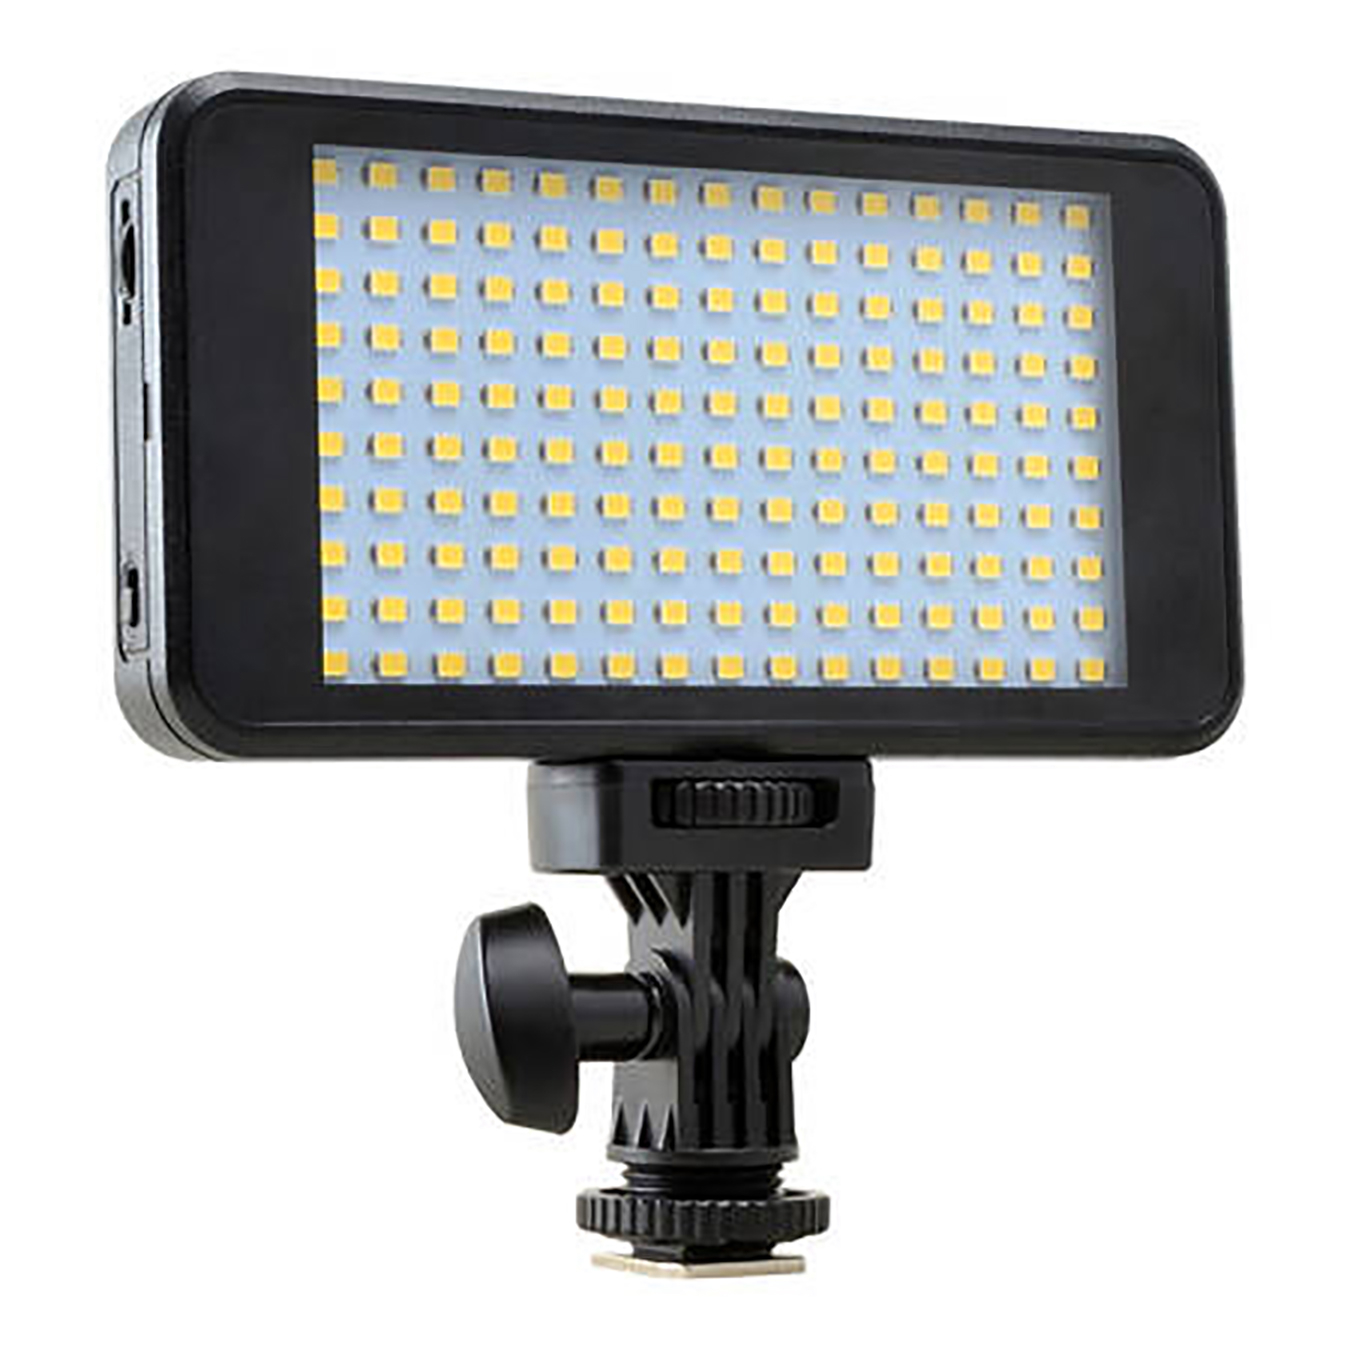 JUPIO PowerLED 150A LED Built-in Battery